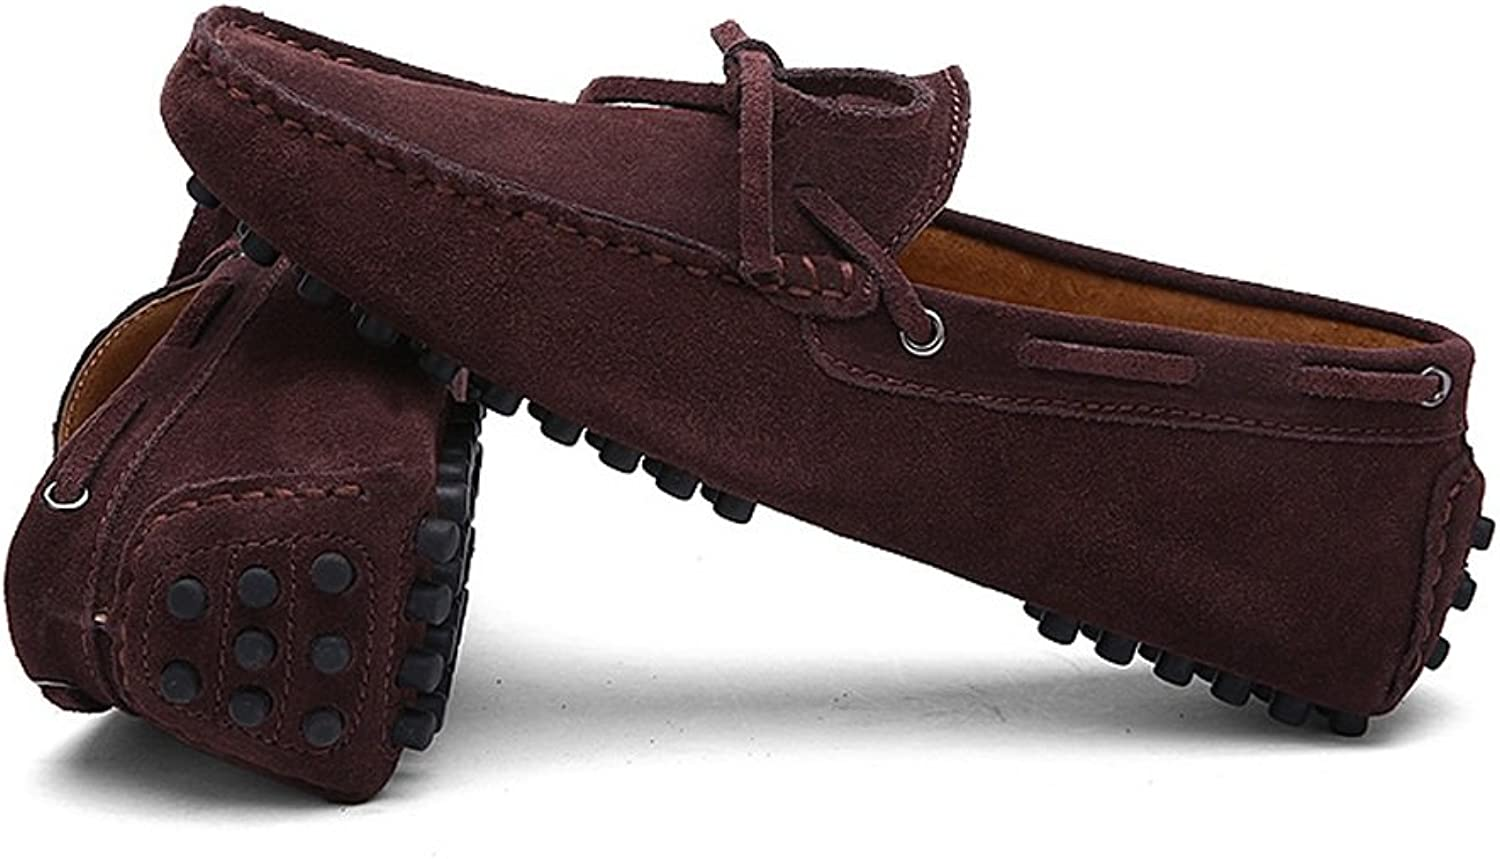 Men's Driving Loafers Genuine Leather Boat Moccasins Rubber Studs Sole Cricket shoes (color   Coffee, Size   49 EU)